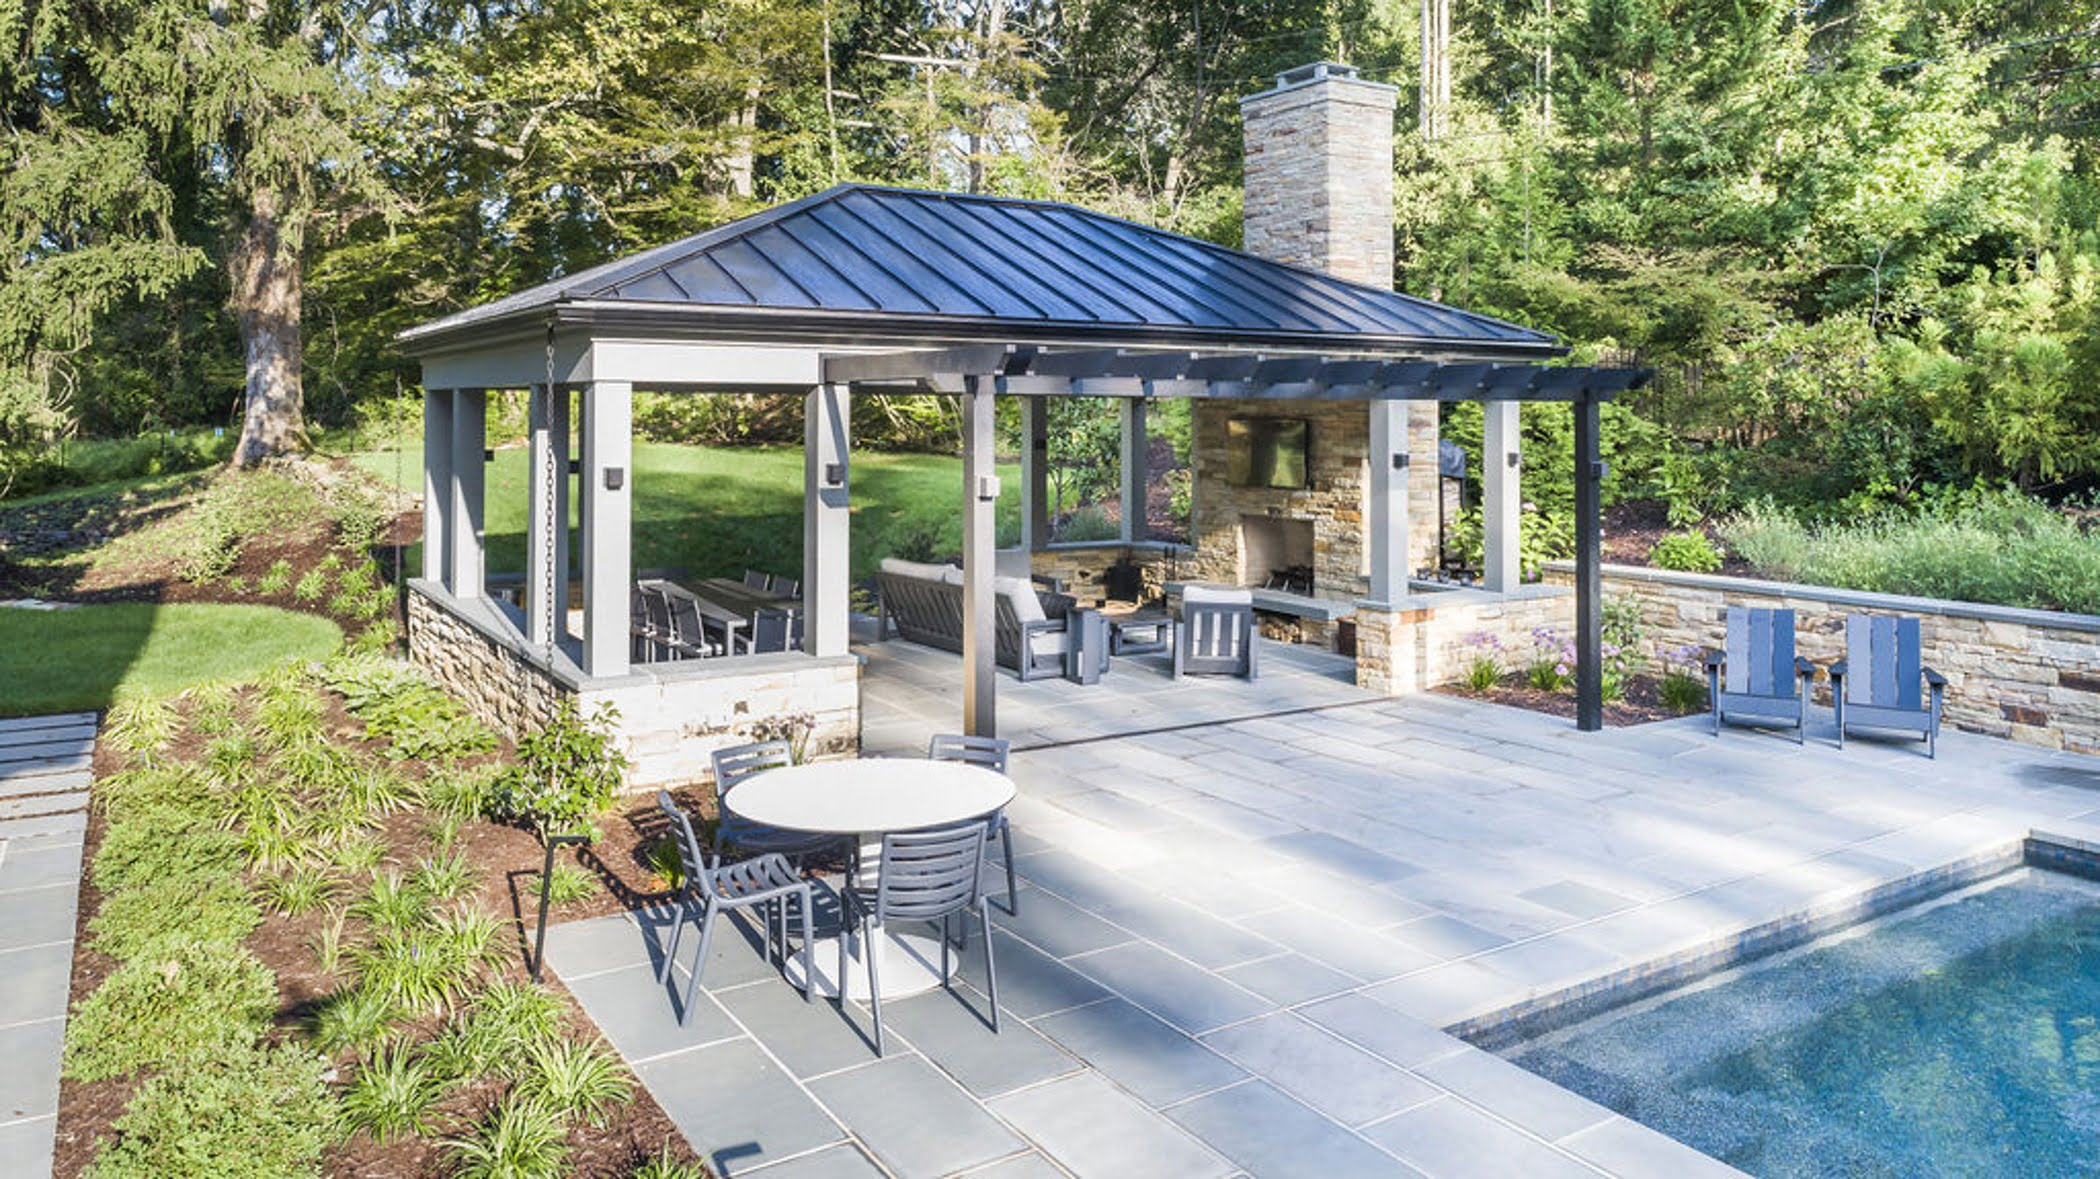 Transitional backyard patio bar and pergola with concrete pavers and cobblestone accented retaining walls